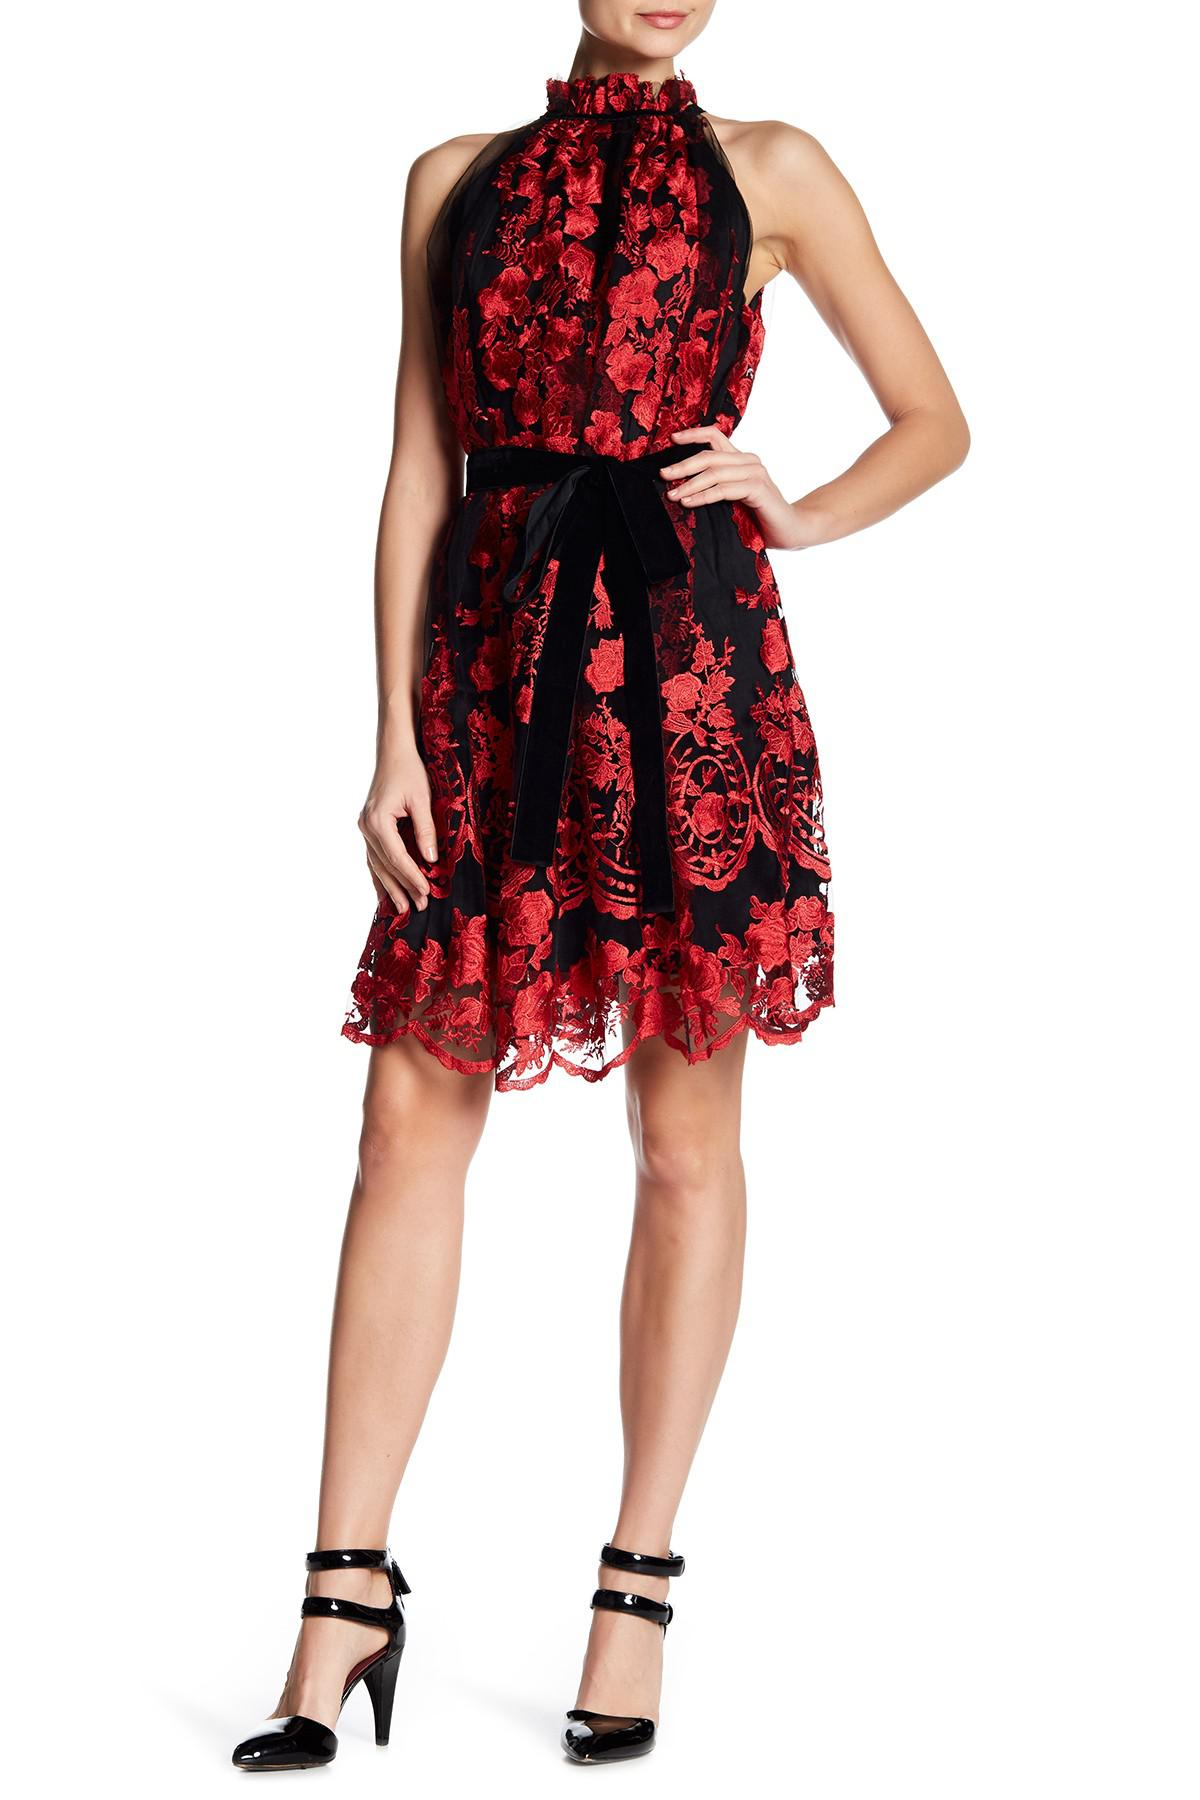 299da87e Alexia Admor Floral Embroidered Ruffle Dress in Red - Lyst